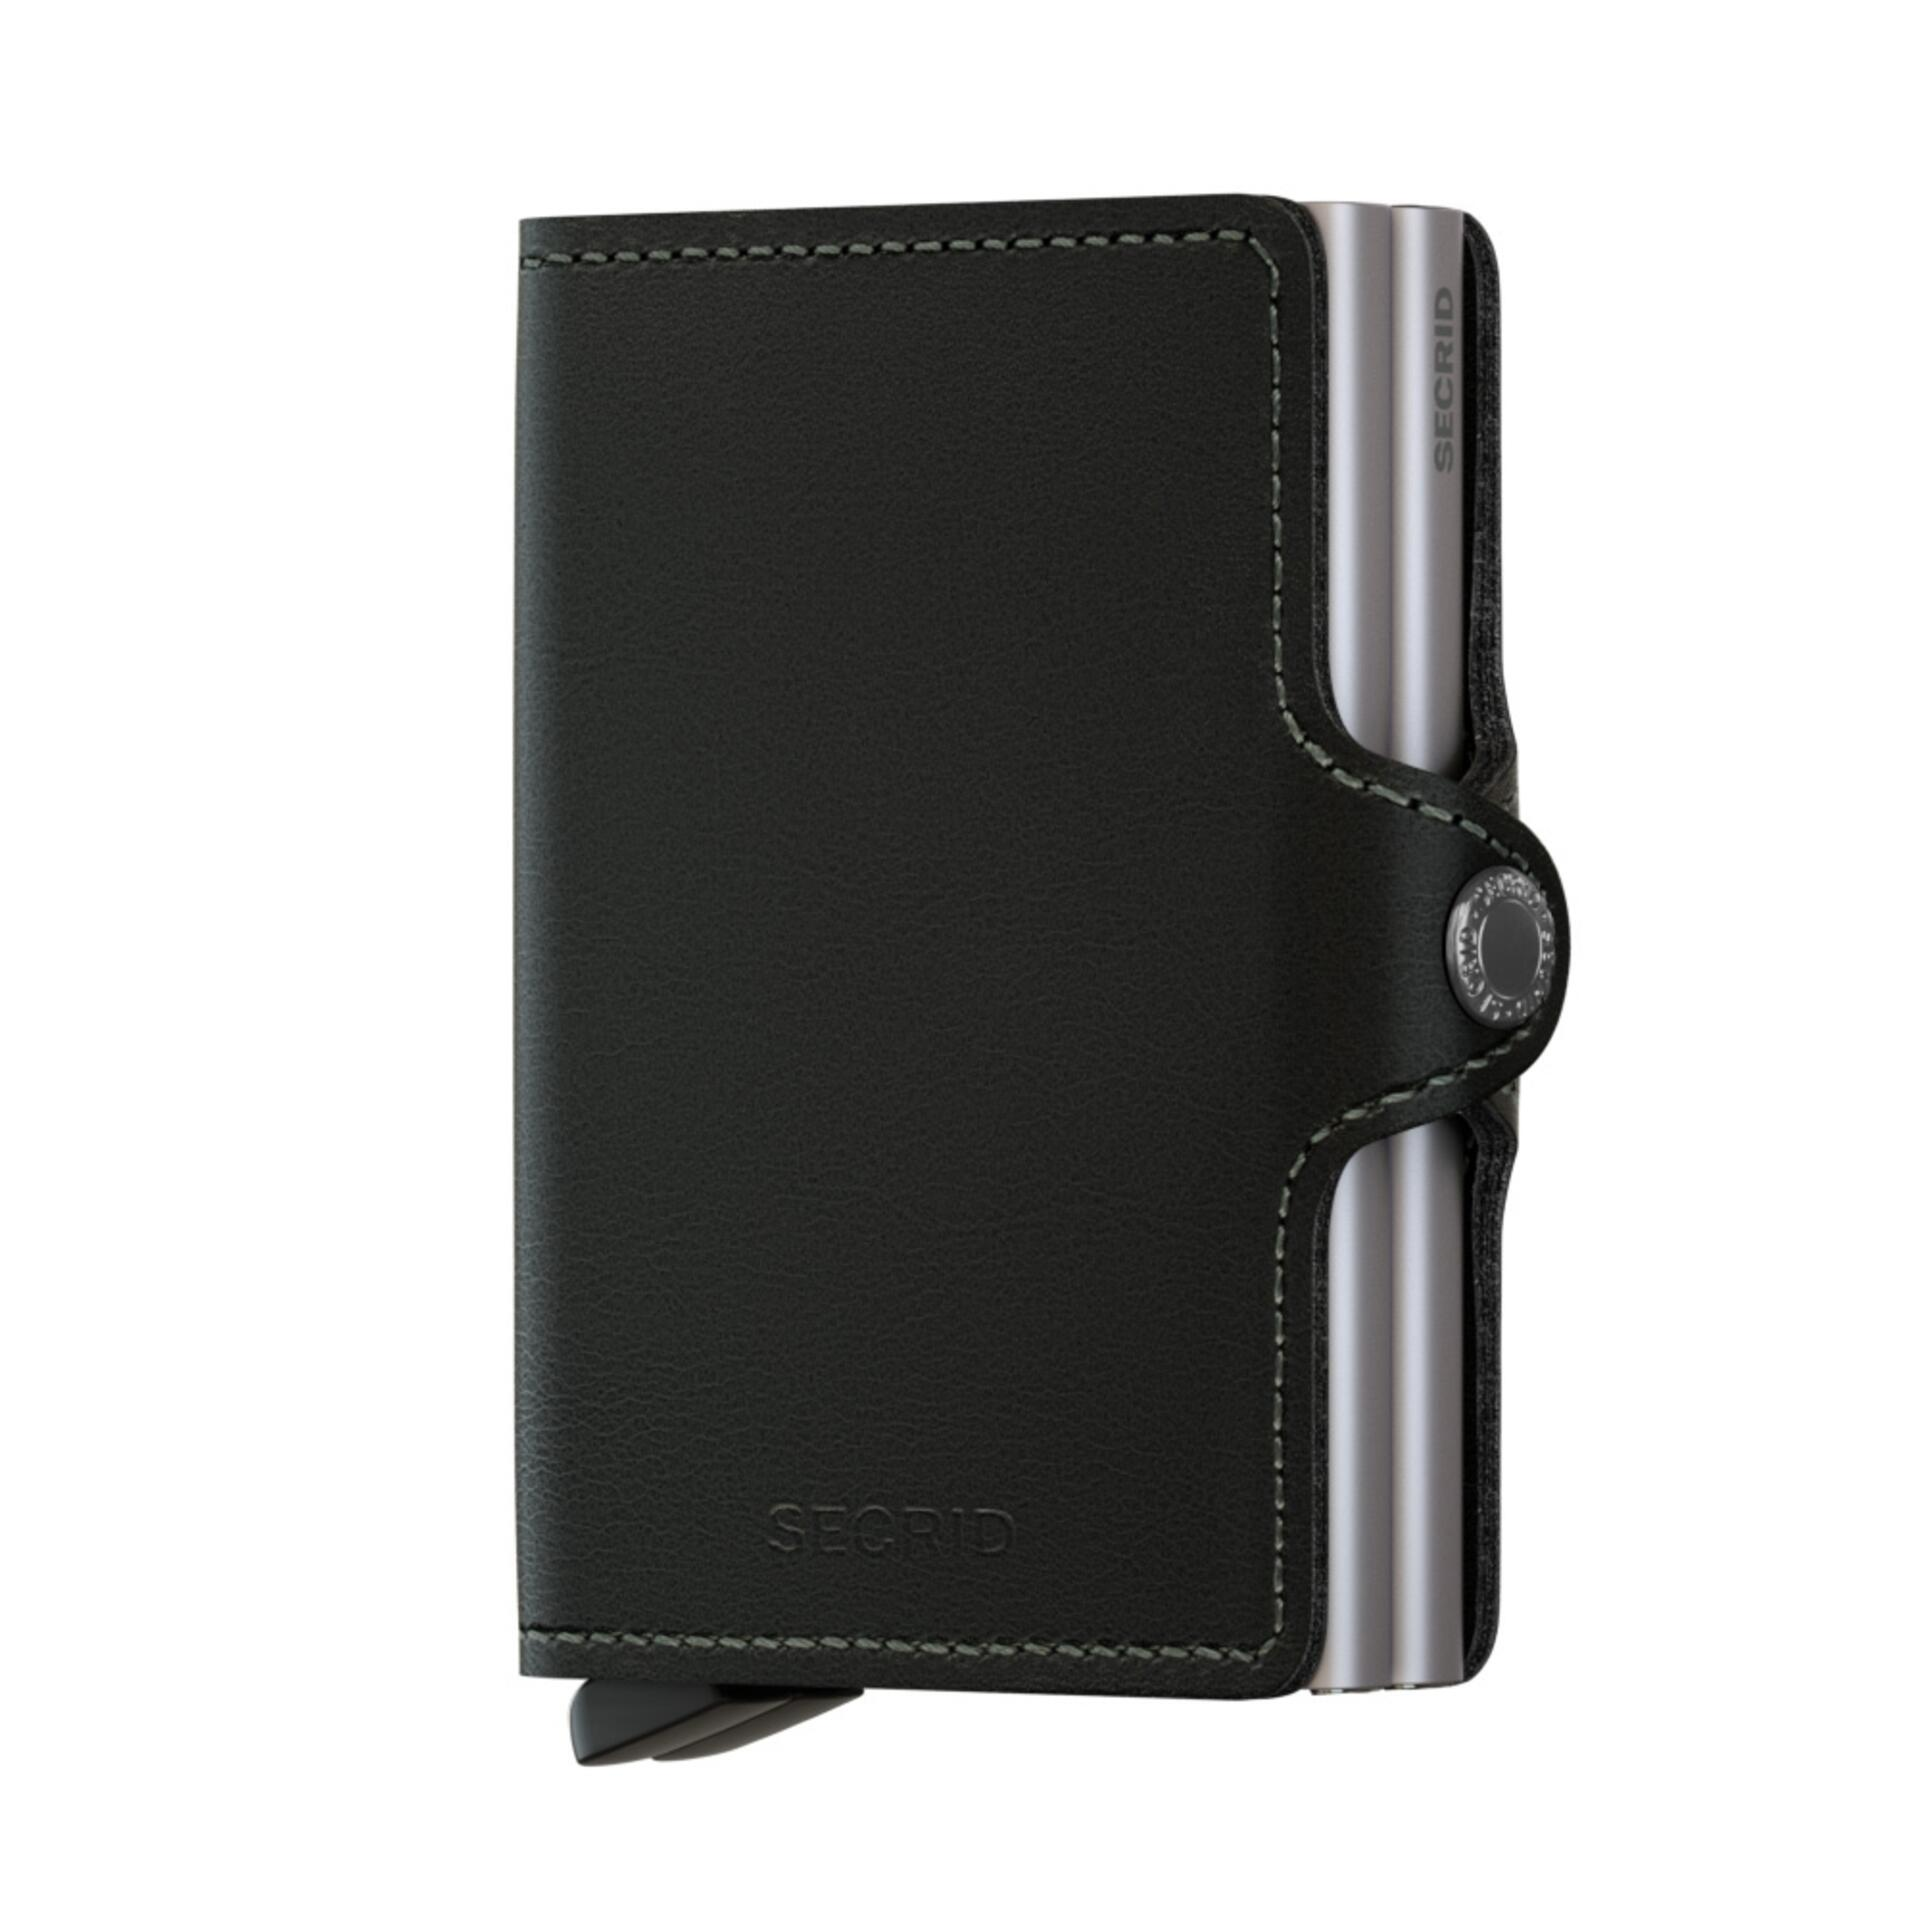 Secrid Twinwallet Original Black Leder